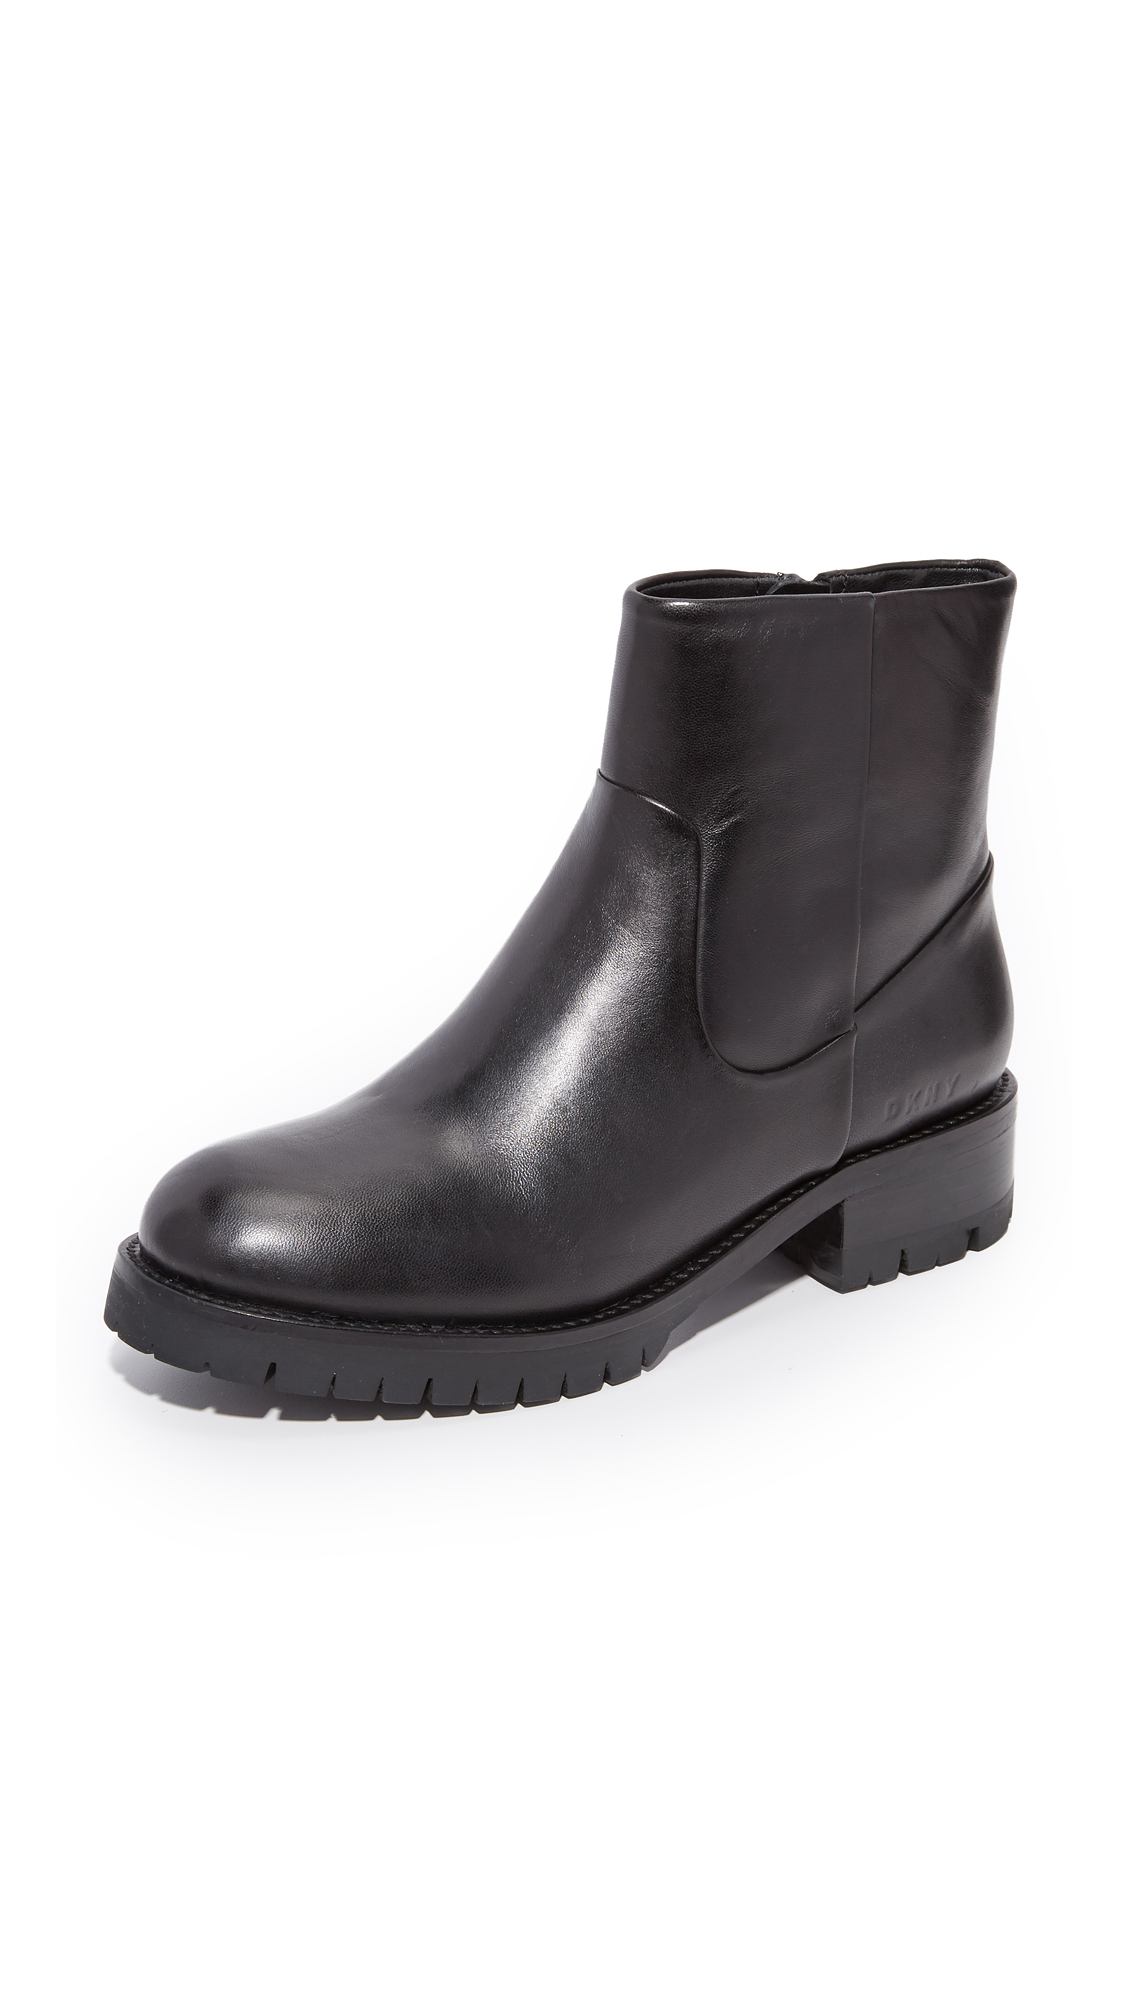 Dkny Mitch Ankle Riding Boots - Black